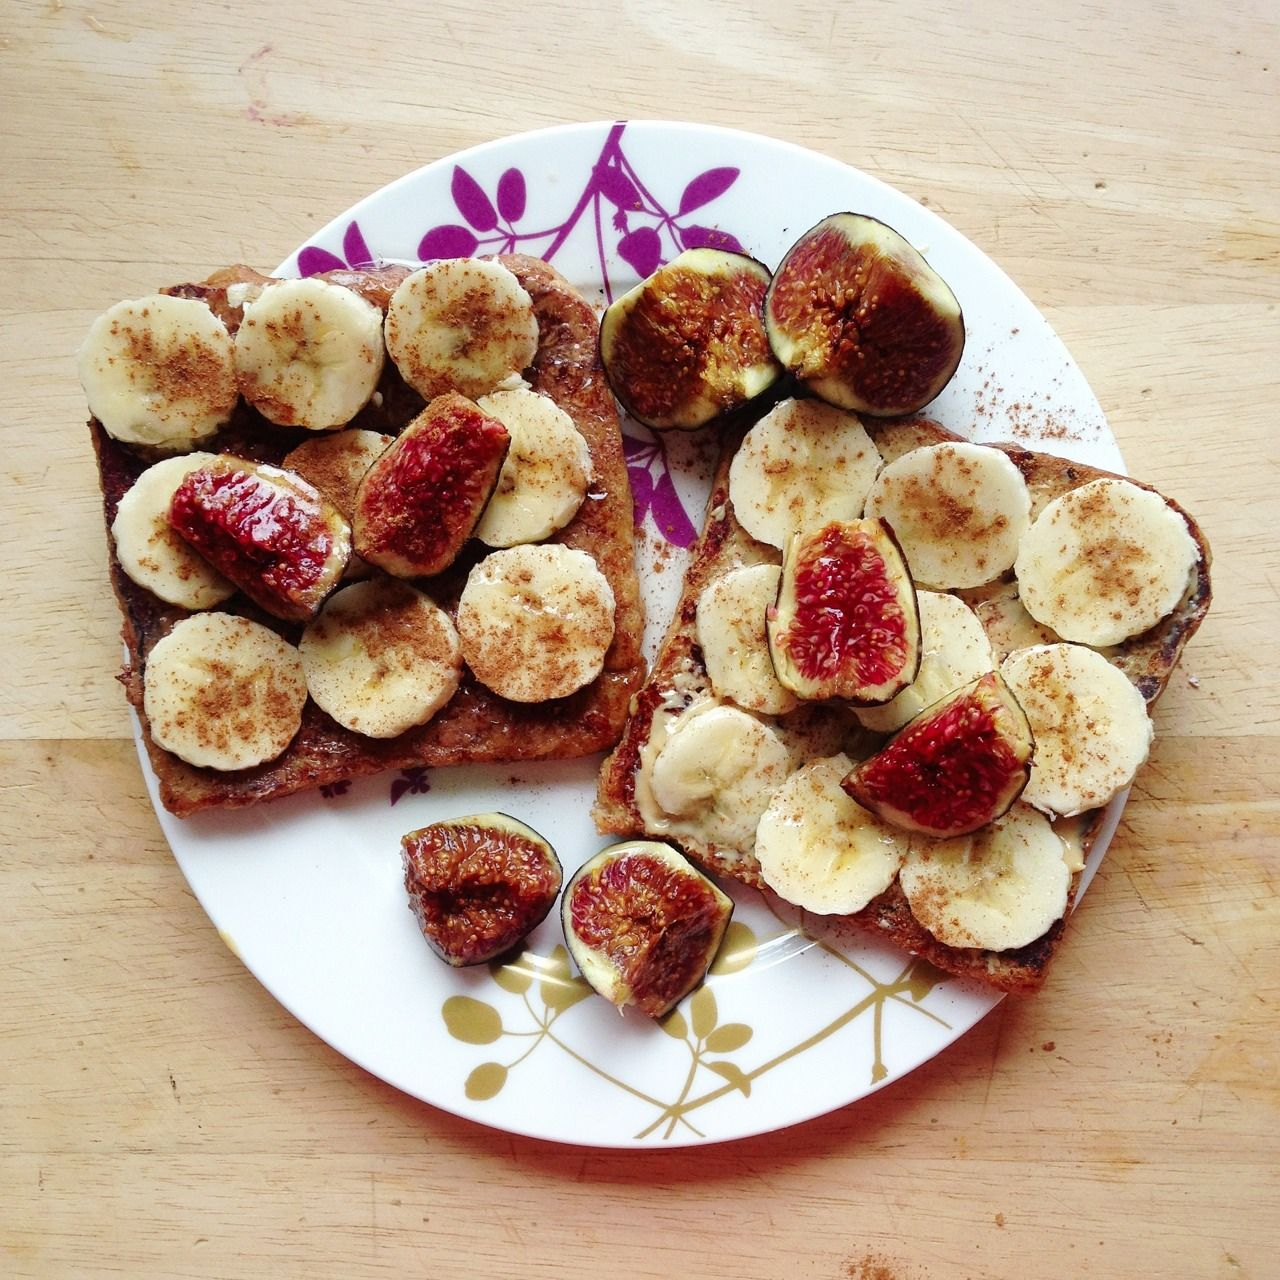 Breakfast: 1/2 grapefruit (not pictured) and vegan french toast with pb and almond butter, banana, cinnamon and agave and figs